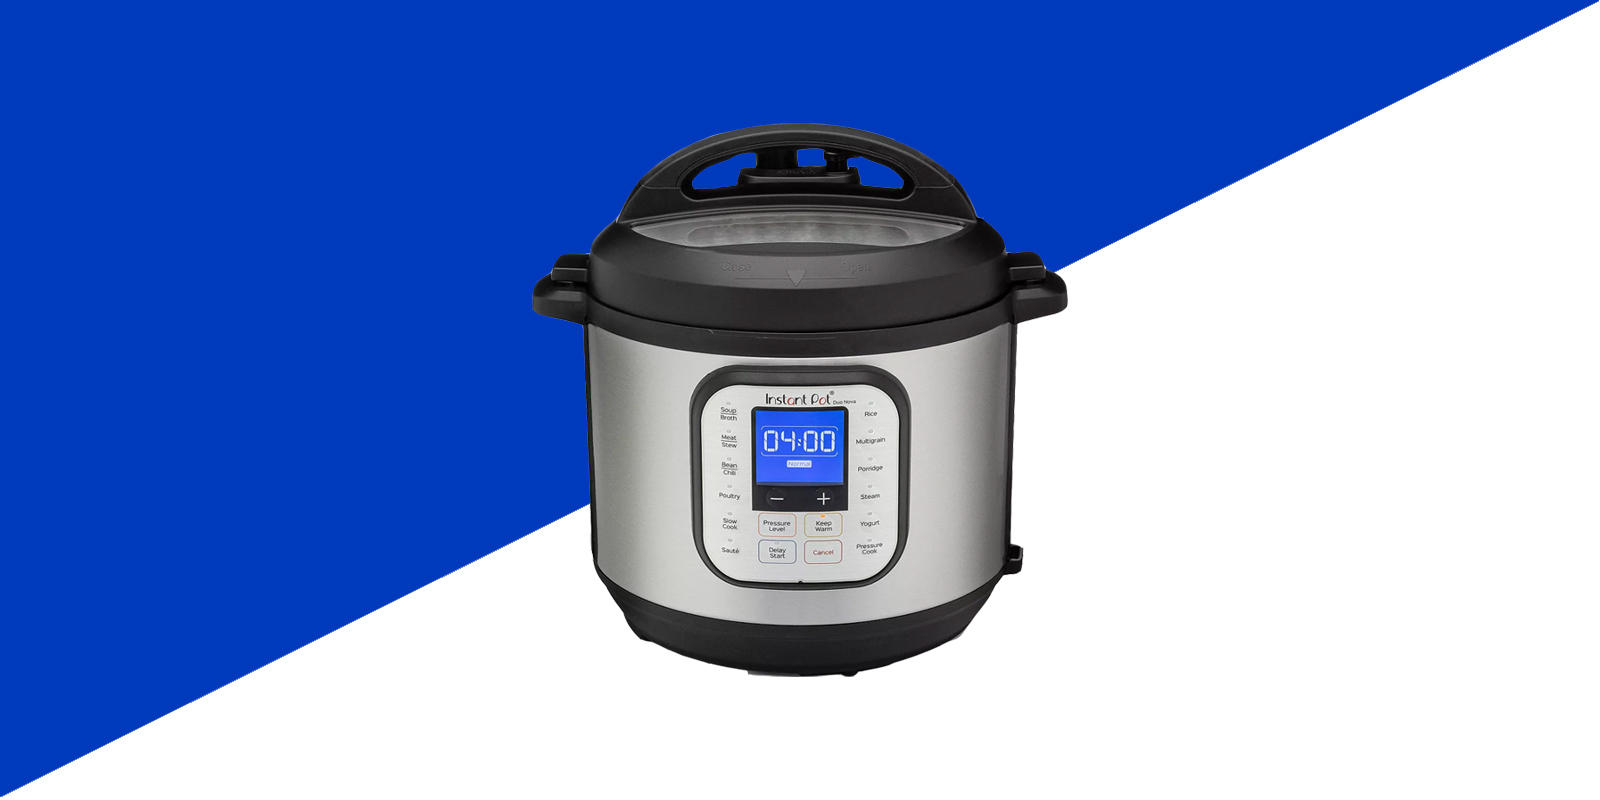 Save $30 on an Instant Pot